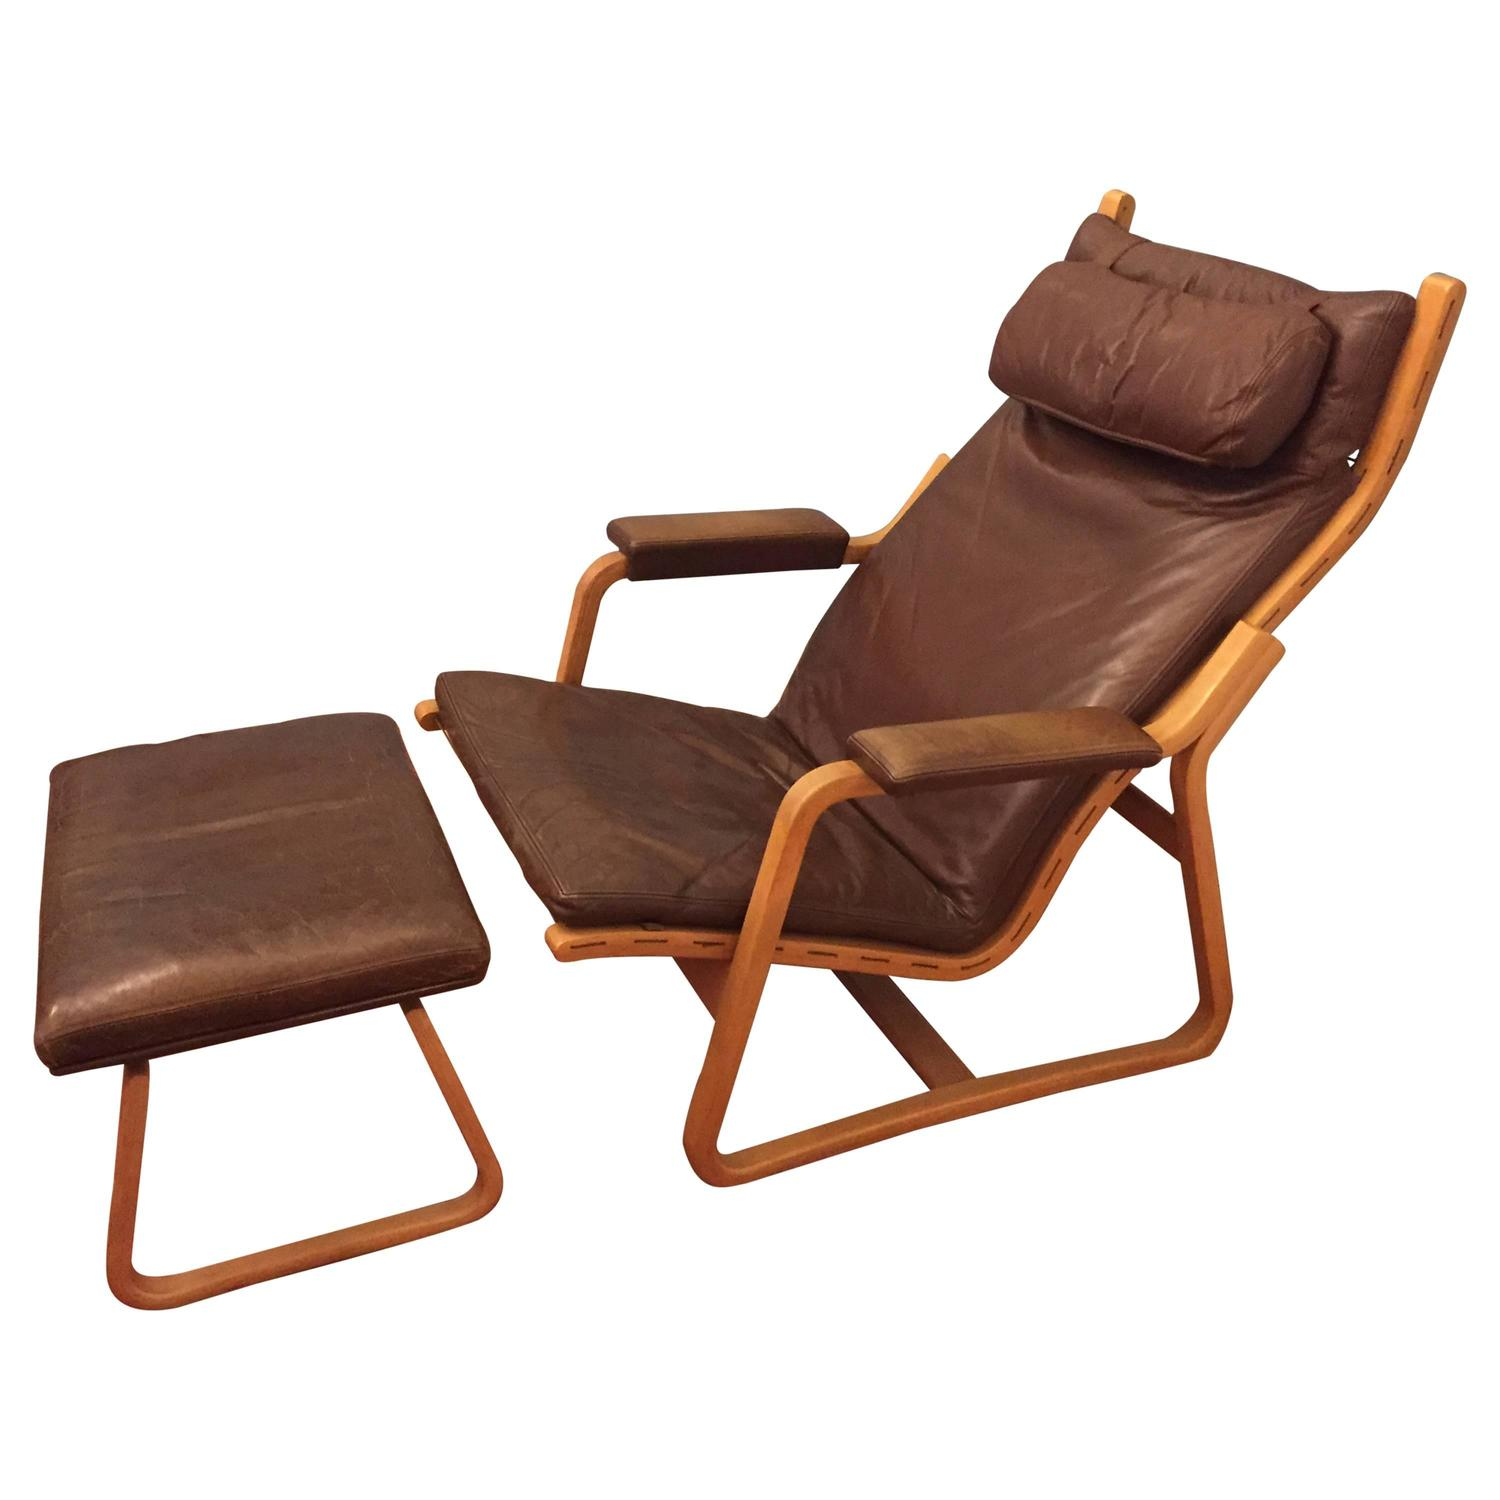 correct posture lounge chair covers of yorkshire ditte and adrian heath two position leather